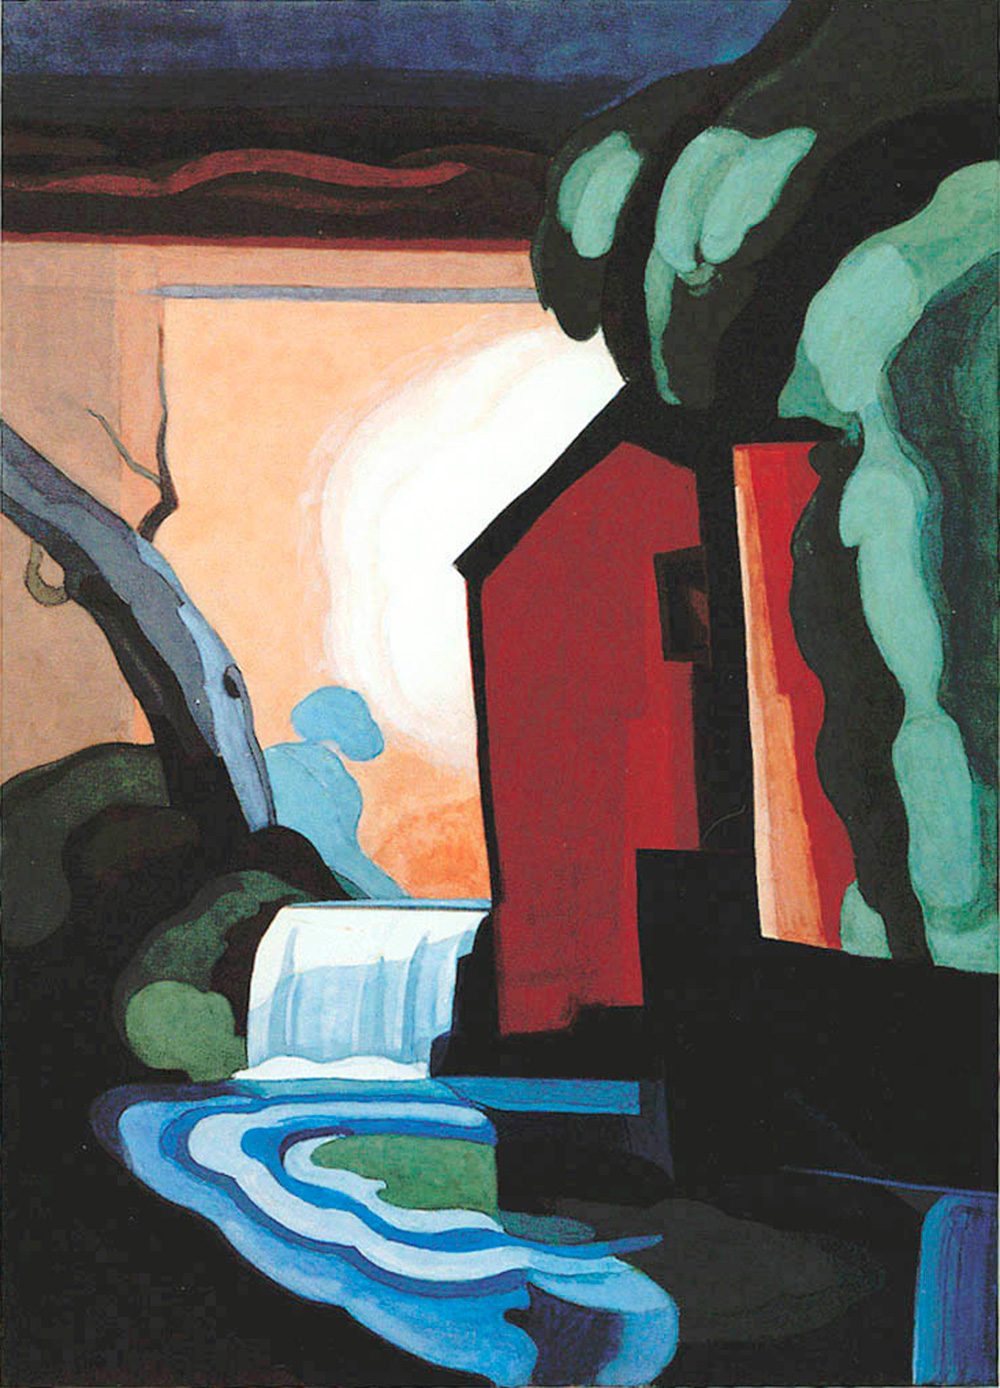 OSCAR BLUEMNER  (1867-1938)   Moonlight Fantasy,  1930 Casein varnish on paper mounted on board 30 3/4 x 22 1/2 inches Private Collection